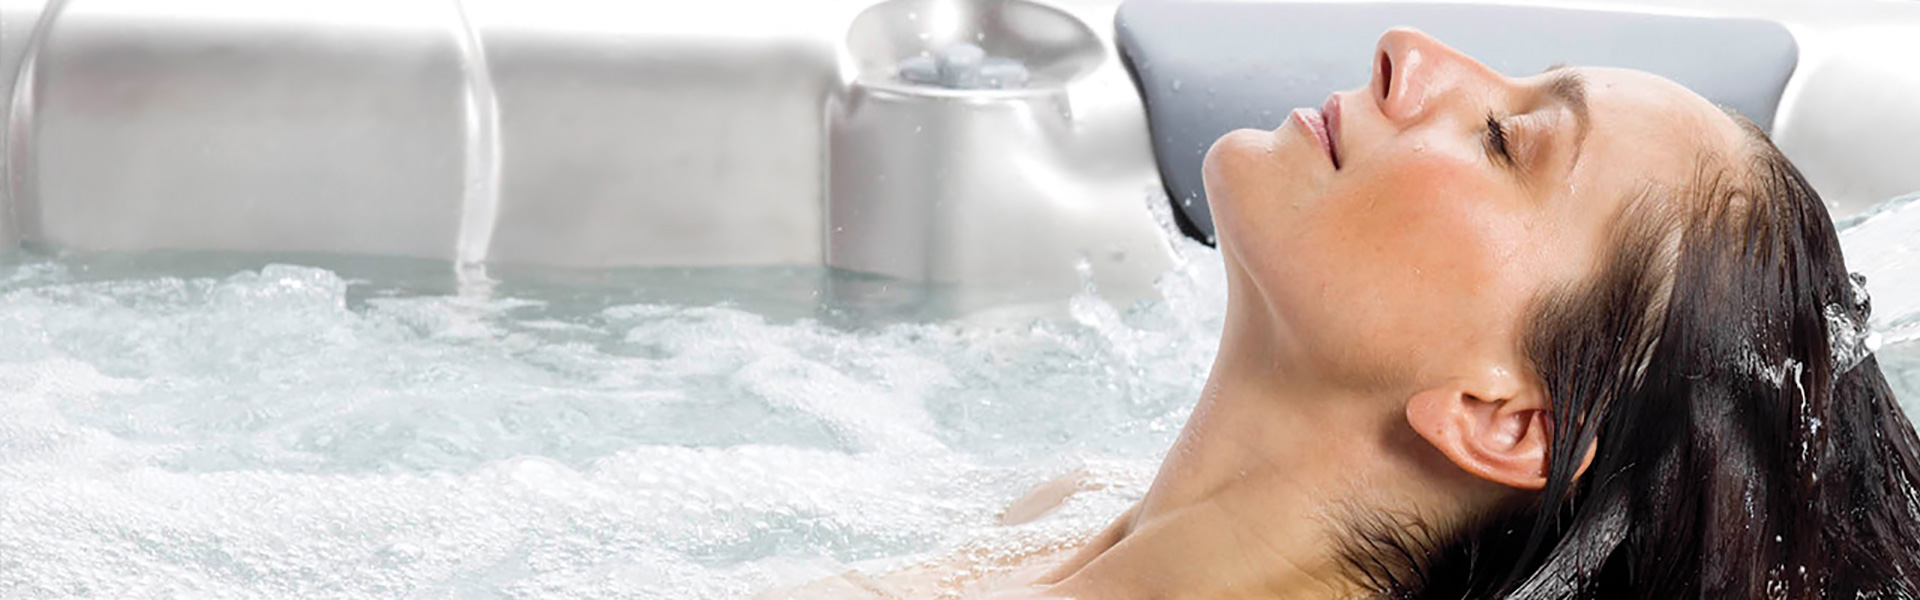 Ease Back Pain with a Dip in Your Backyard Spa, Hot Tubs Near Me, Fenton Spa Sale